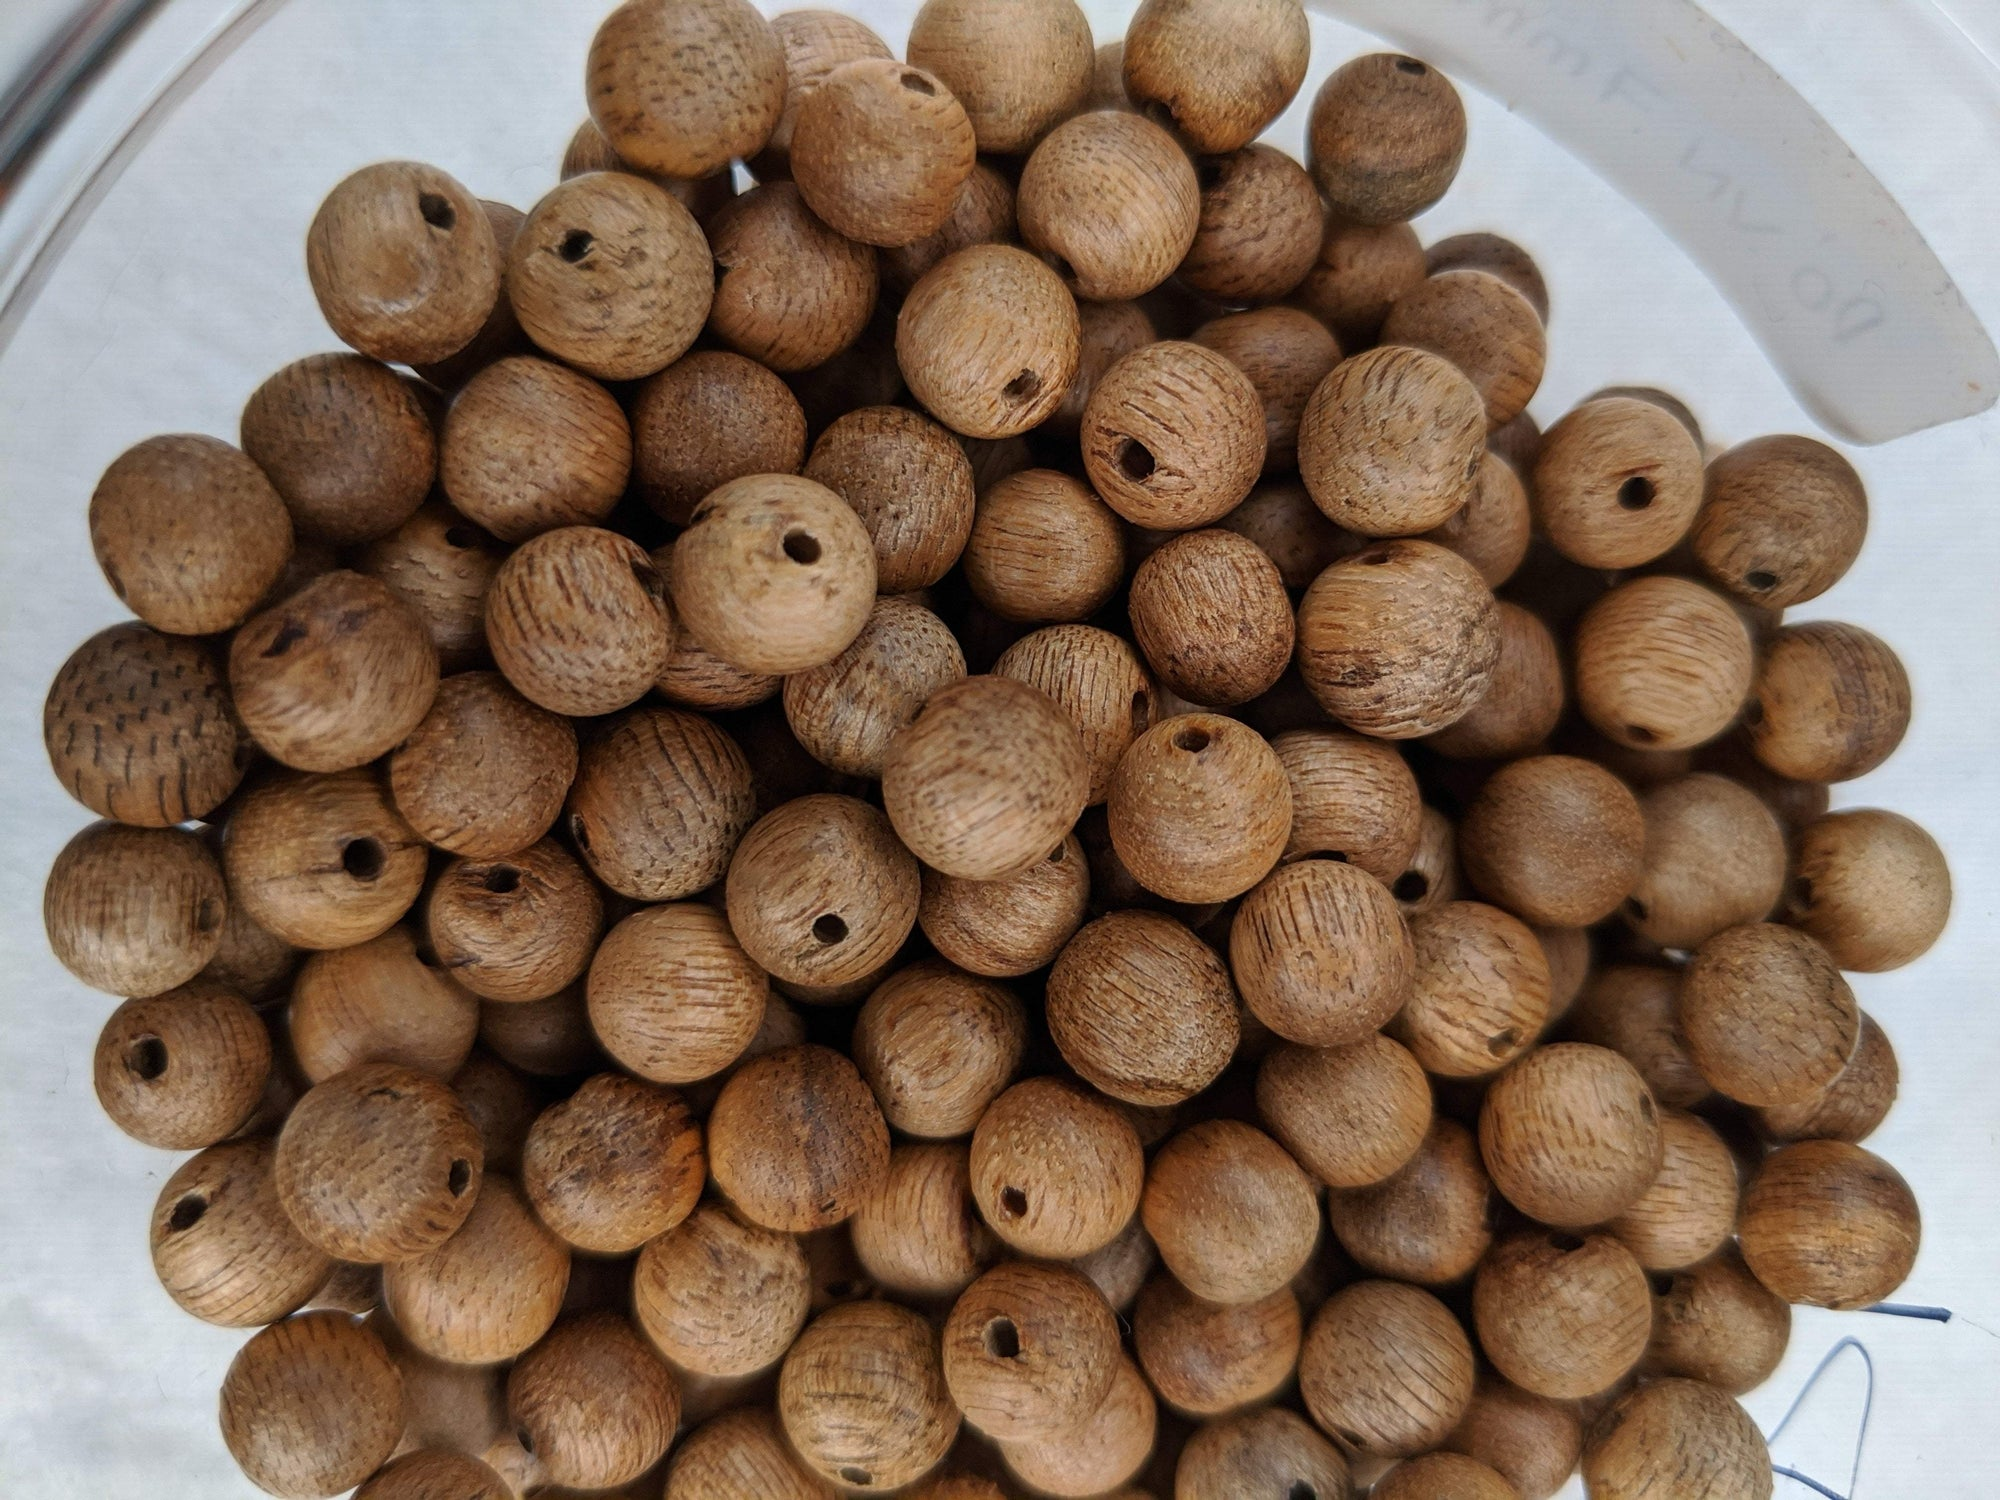 Single Beads Cultivated agarwood 7mm - Grandawood- Agarwood Australia